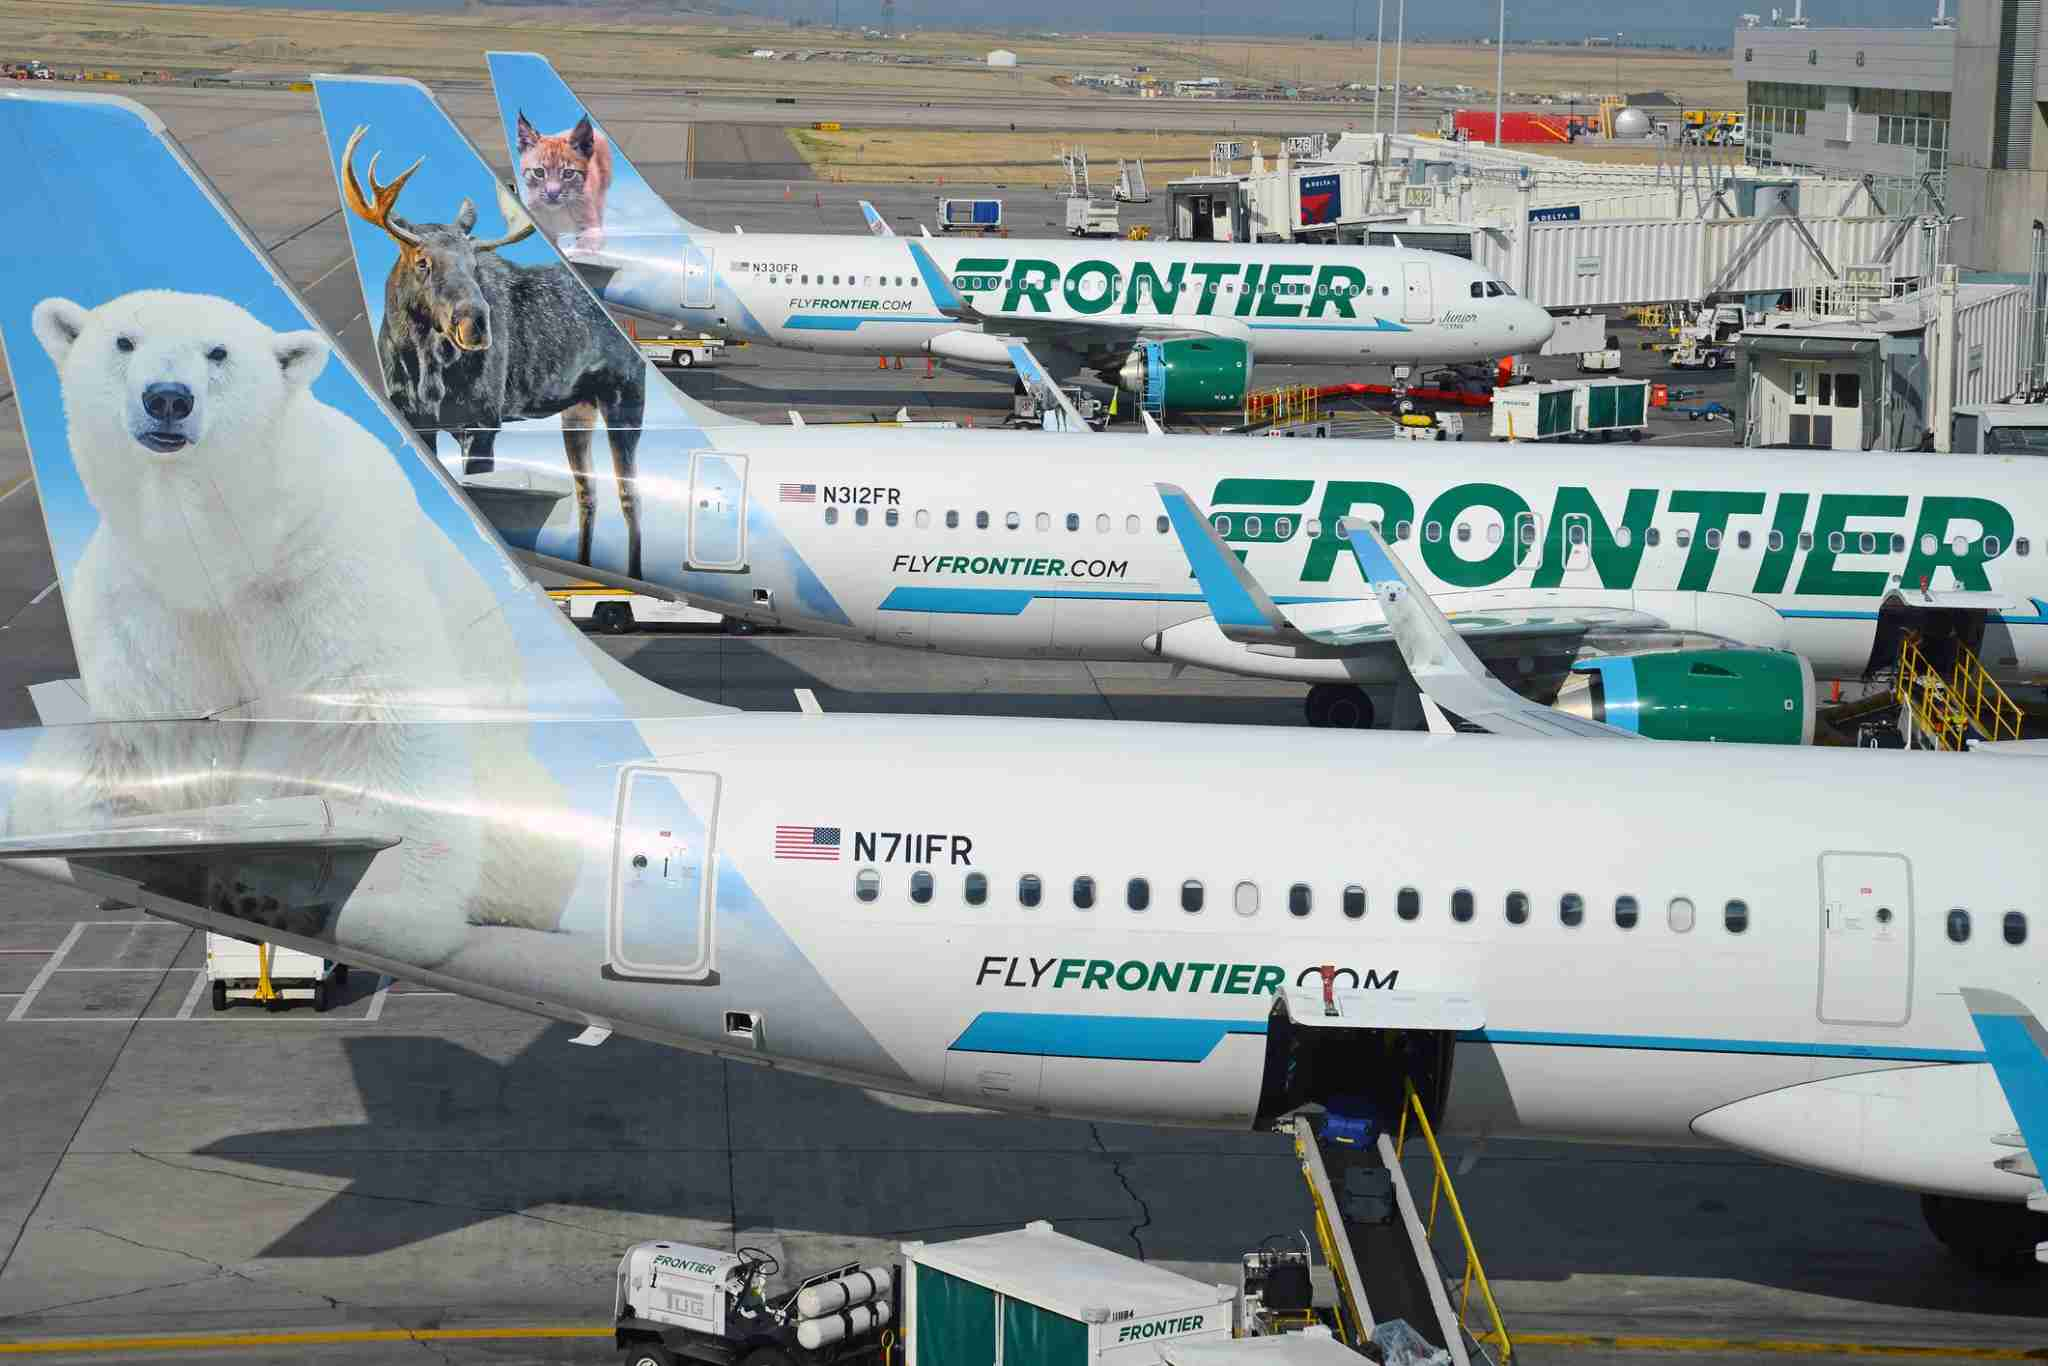 Frontier Airlines planes are seen lined up at their gates/ (Photo by robertcicchetti / Getty Images)